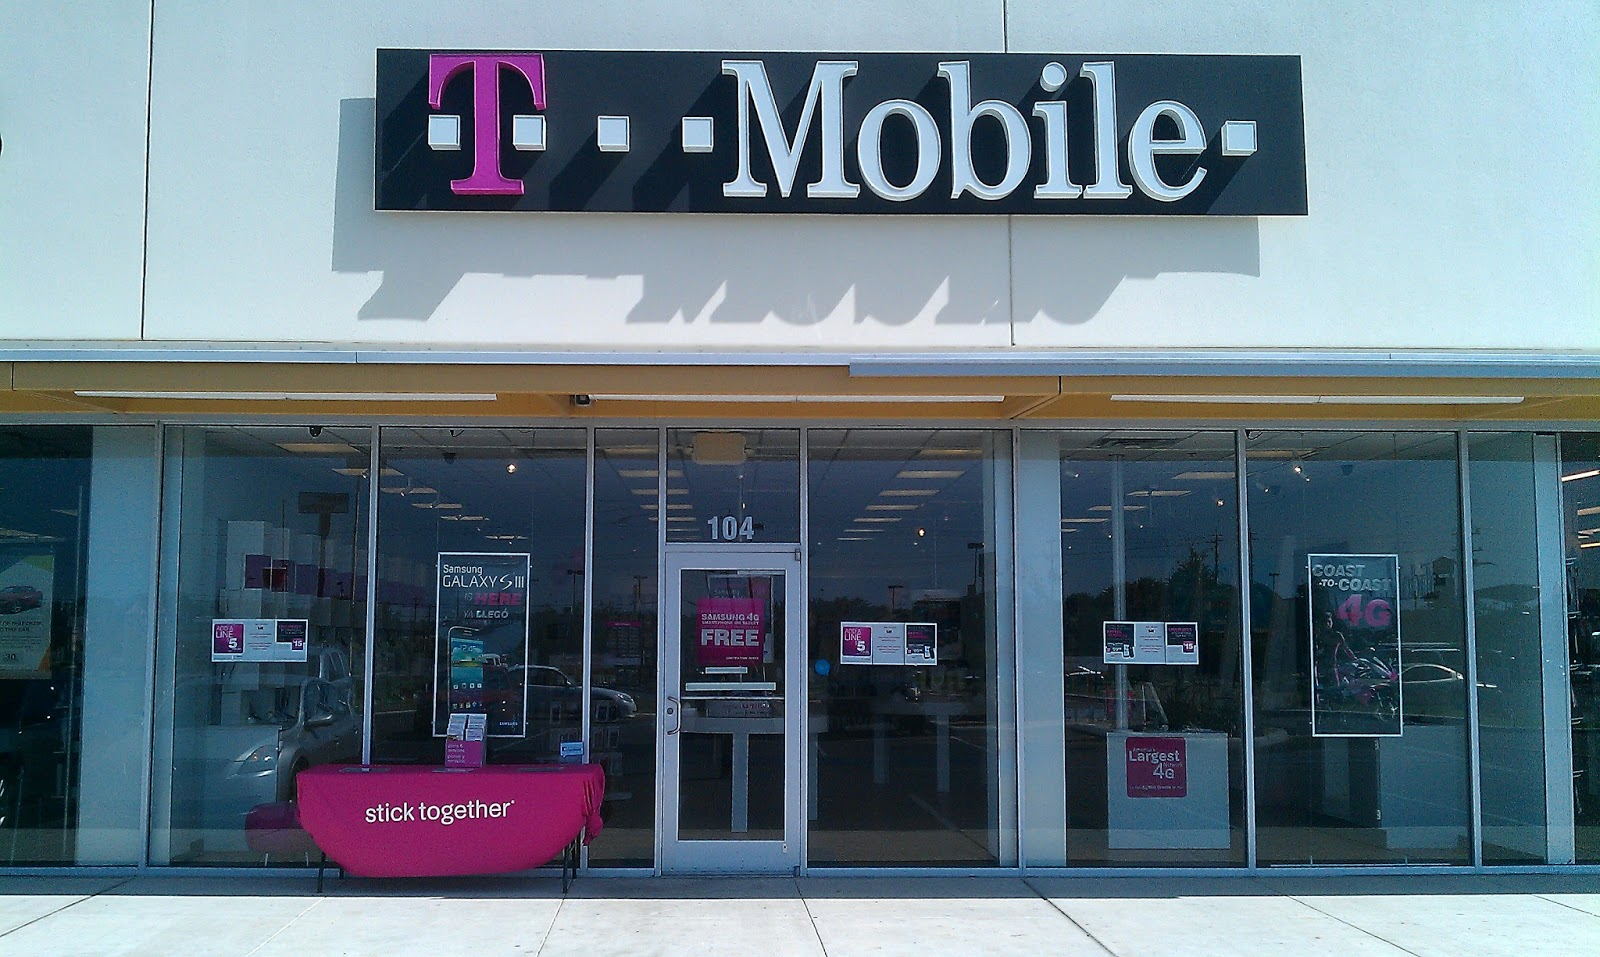 Find a T-Mobile store near you to upgrade your mobile phone or to switch your phone plan provider quickly and easily.